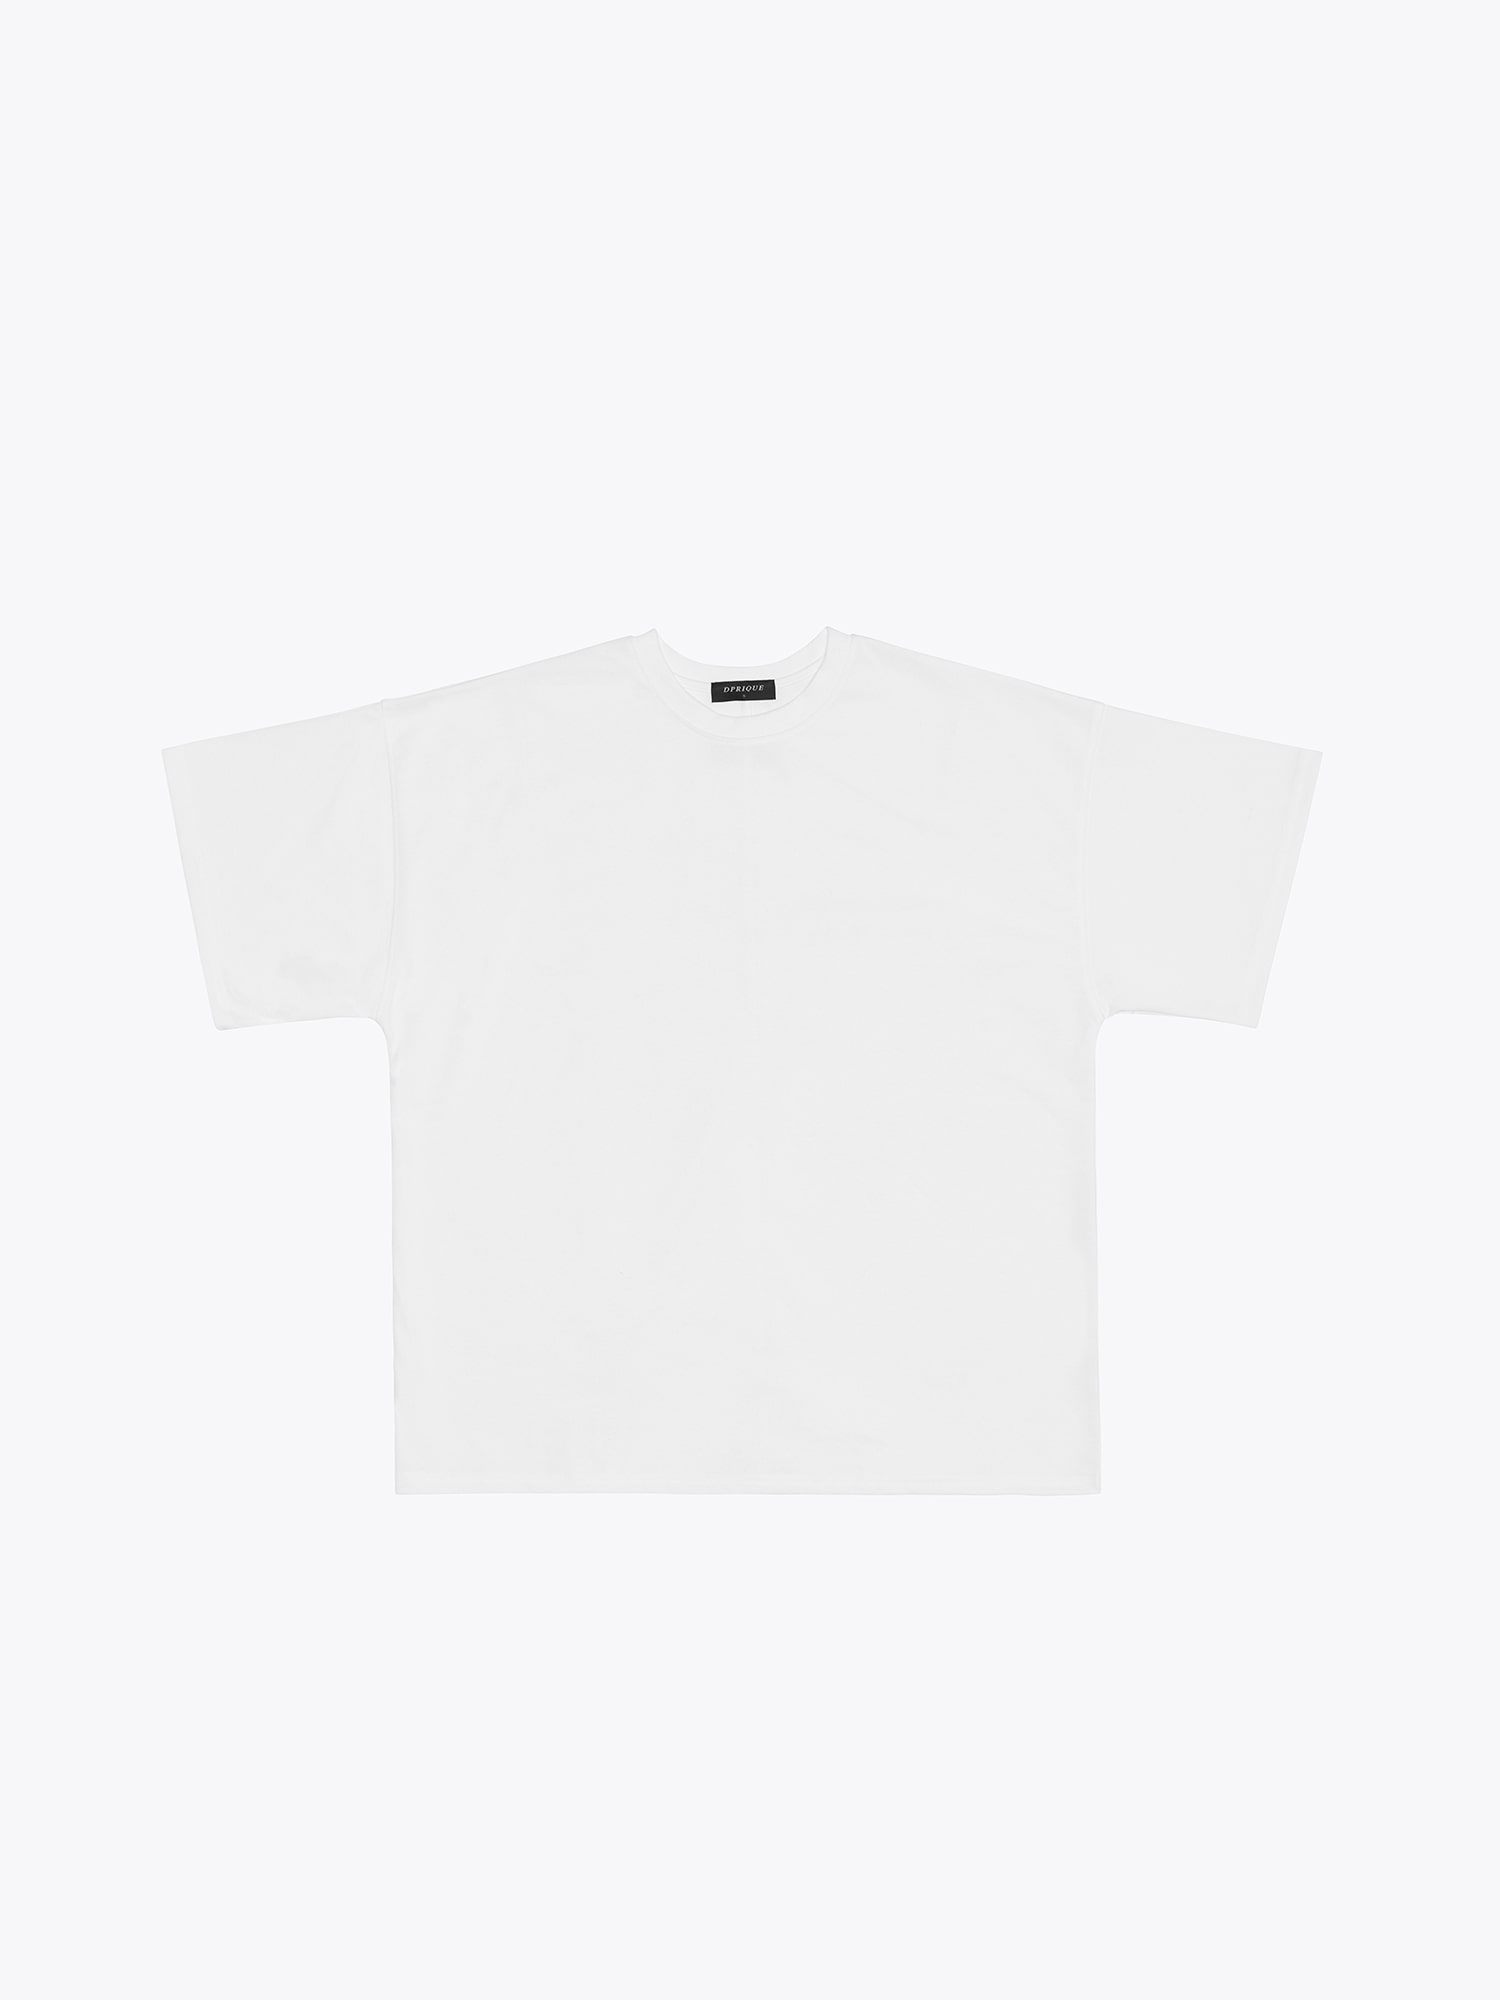 05 Oversized T-Shirt - White